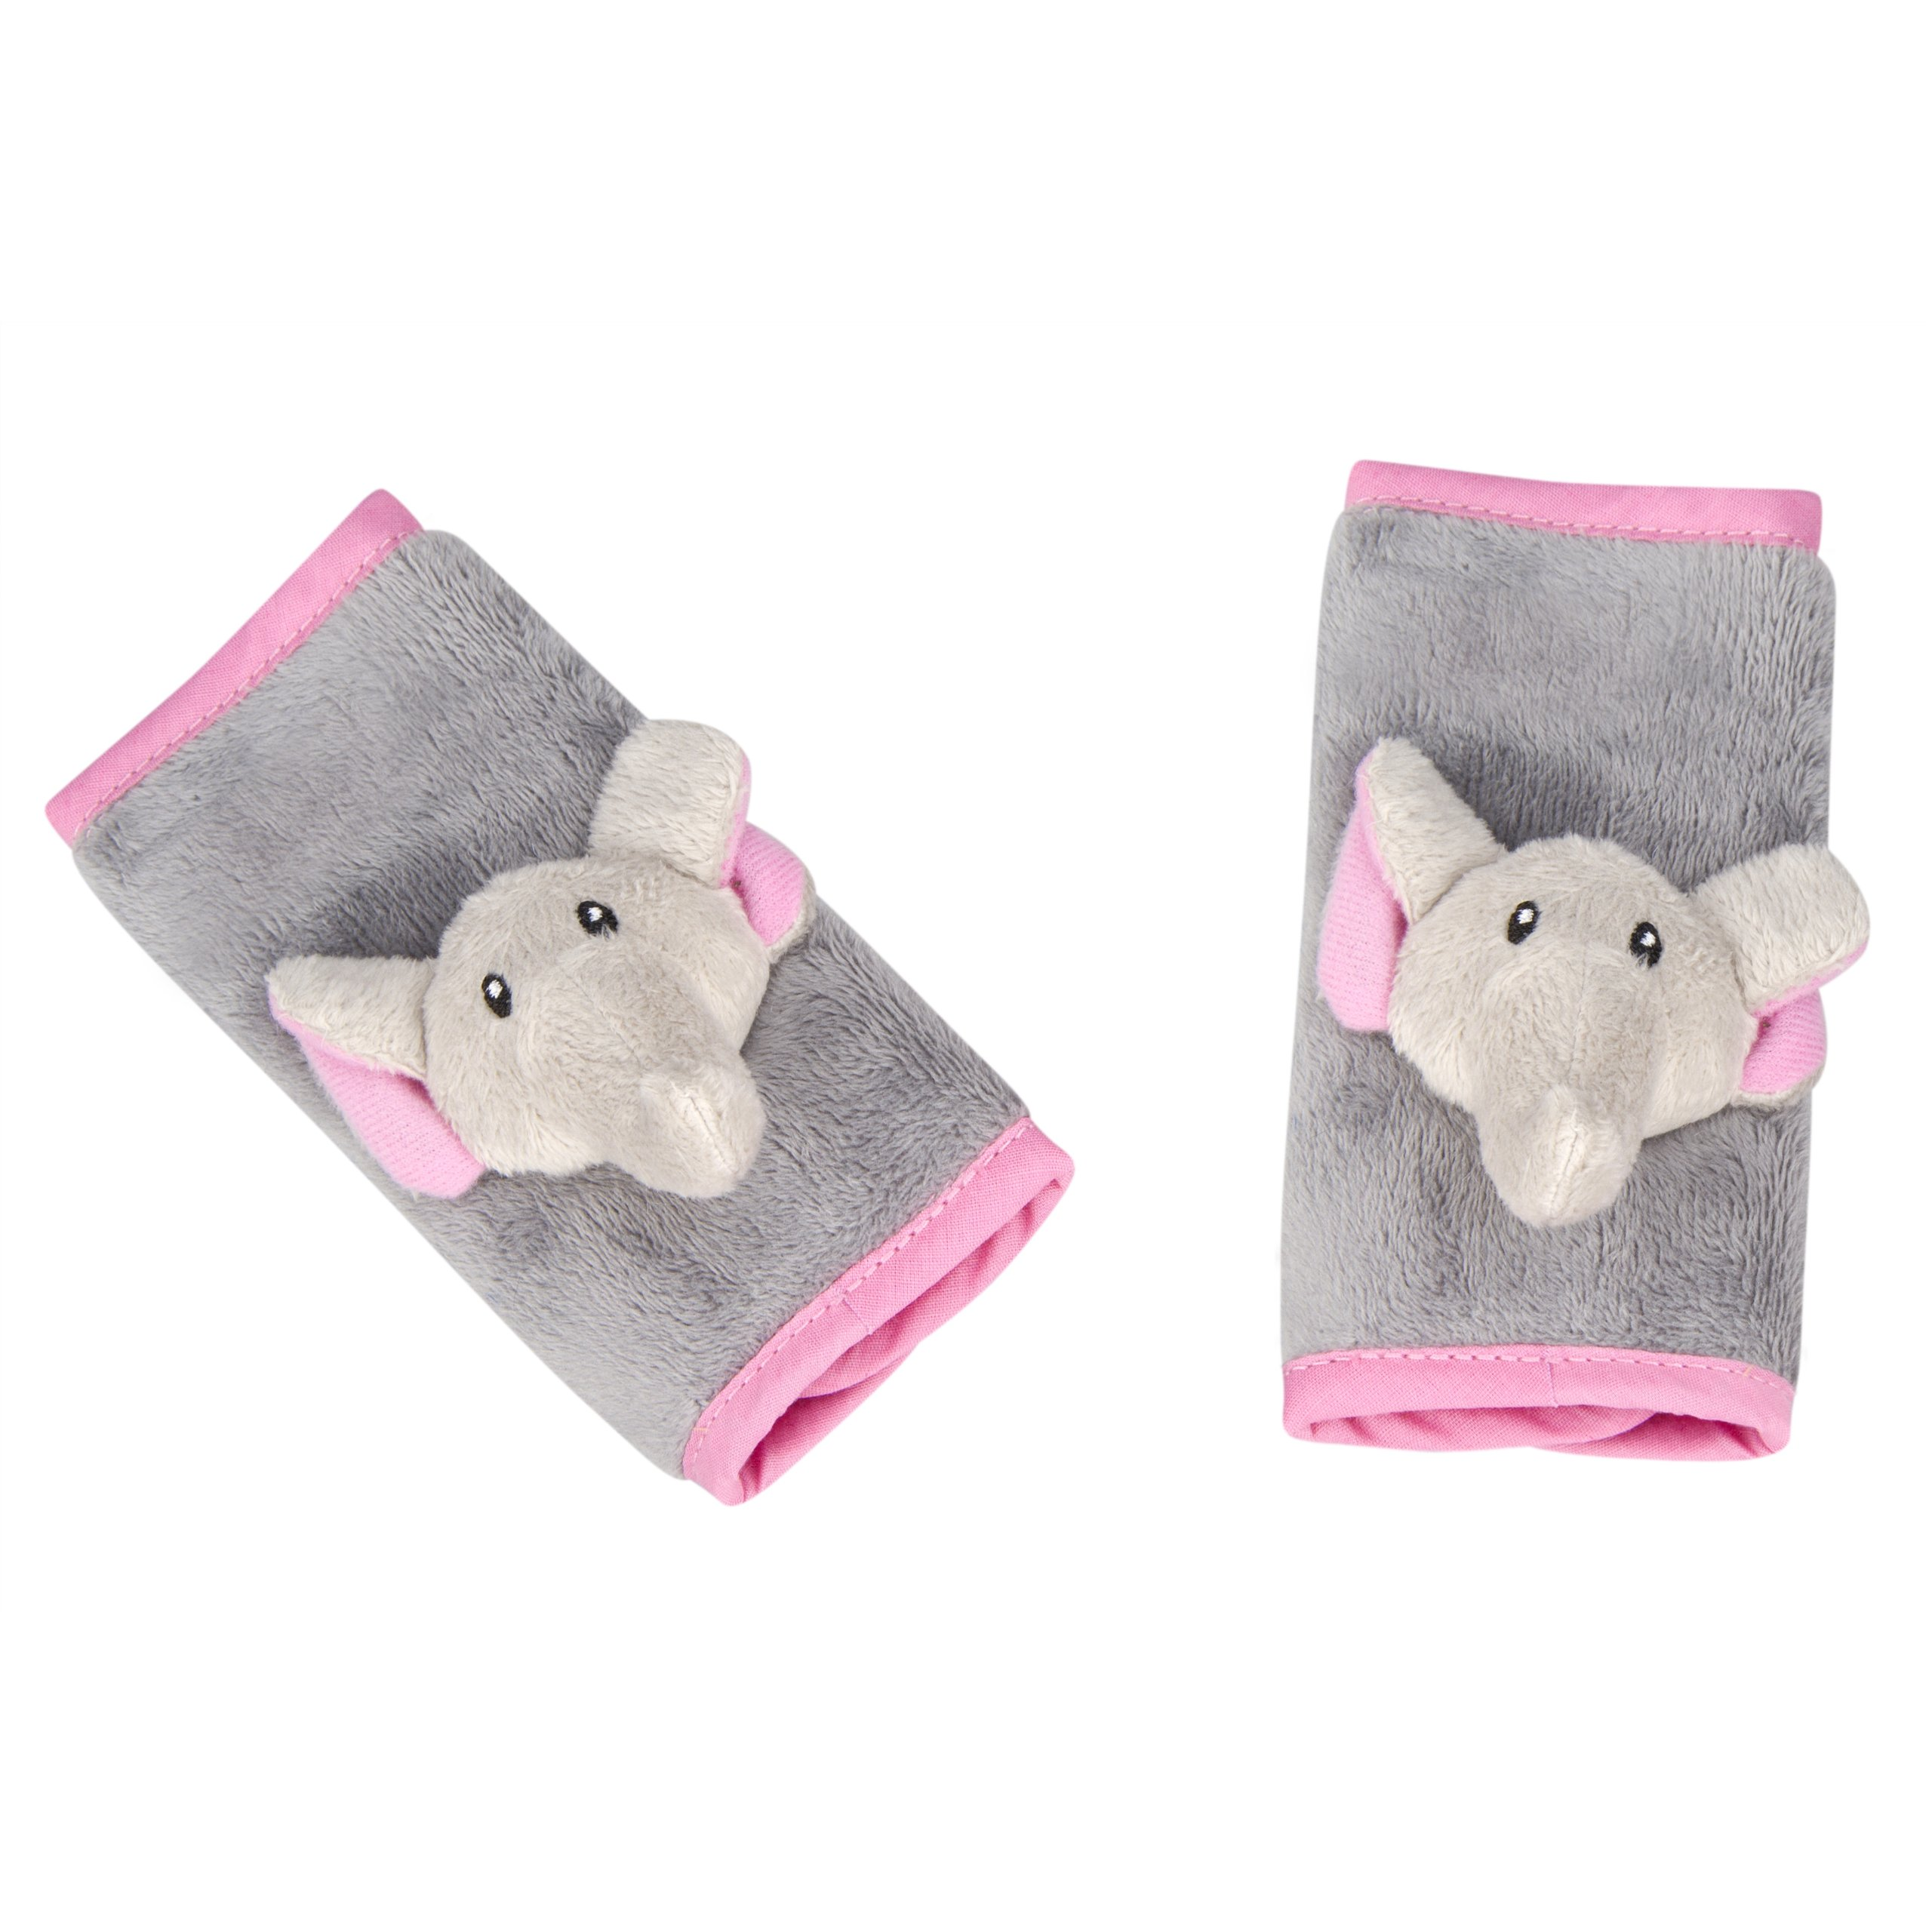 Animal Planet Strap Covers 2 Pack, Pink Elephant